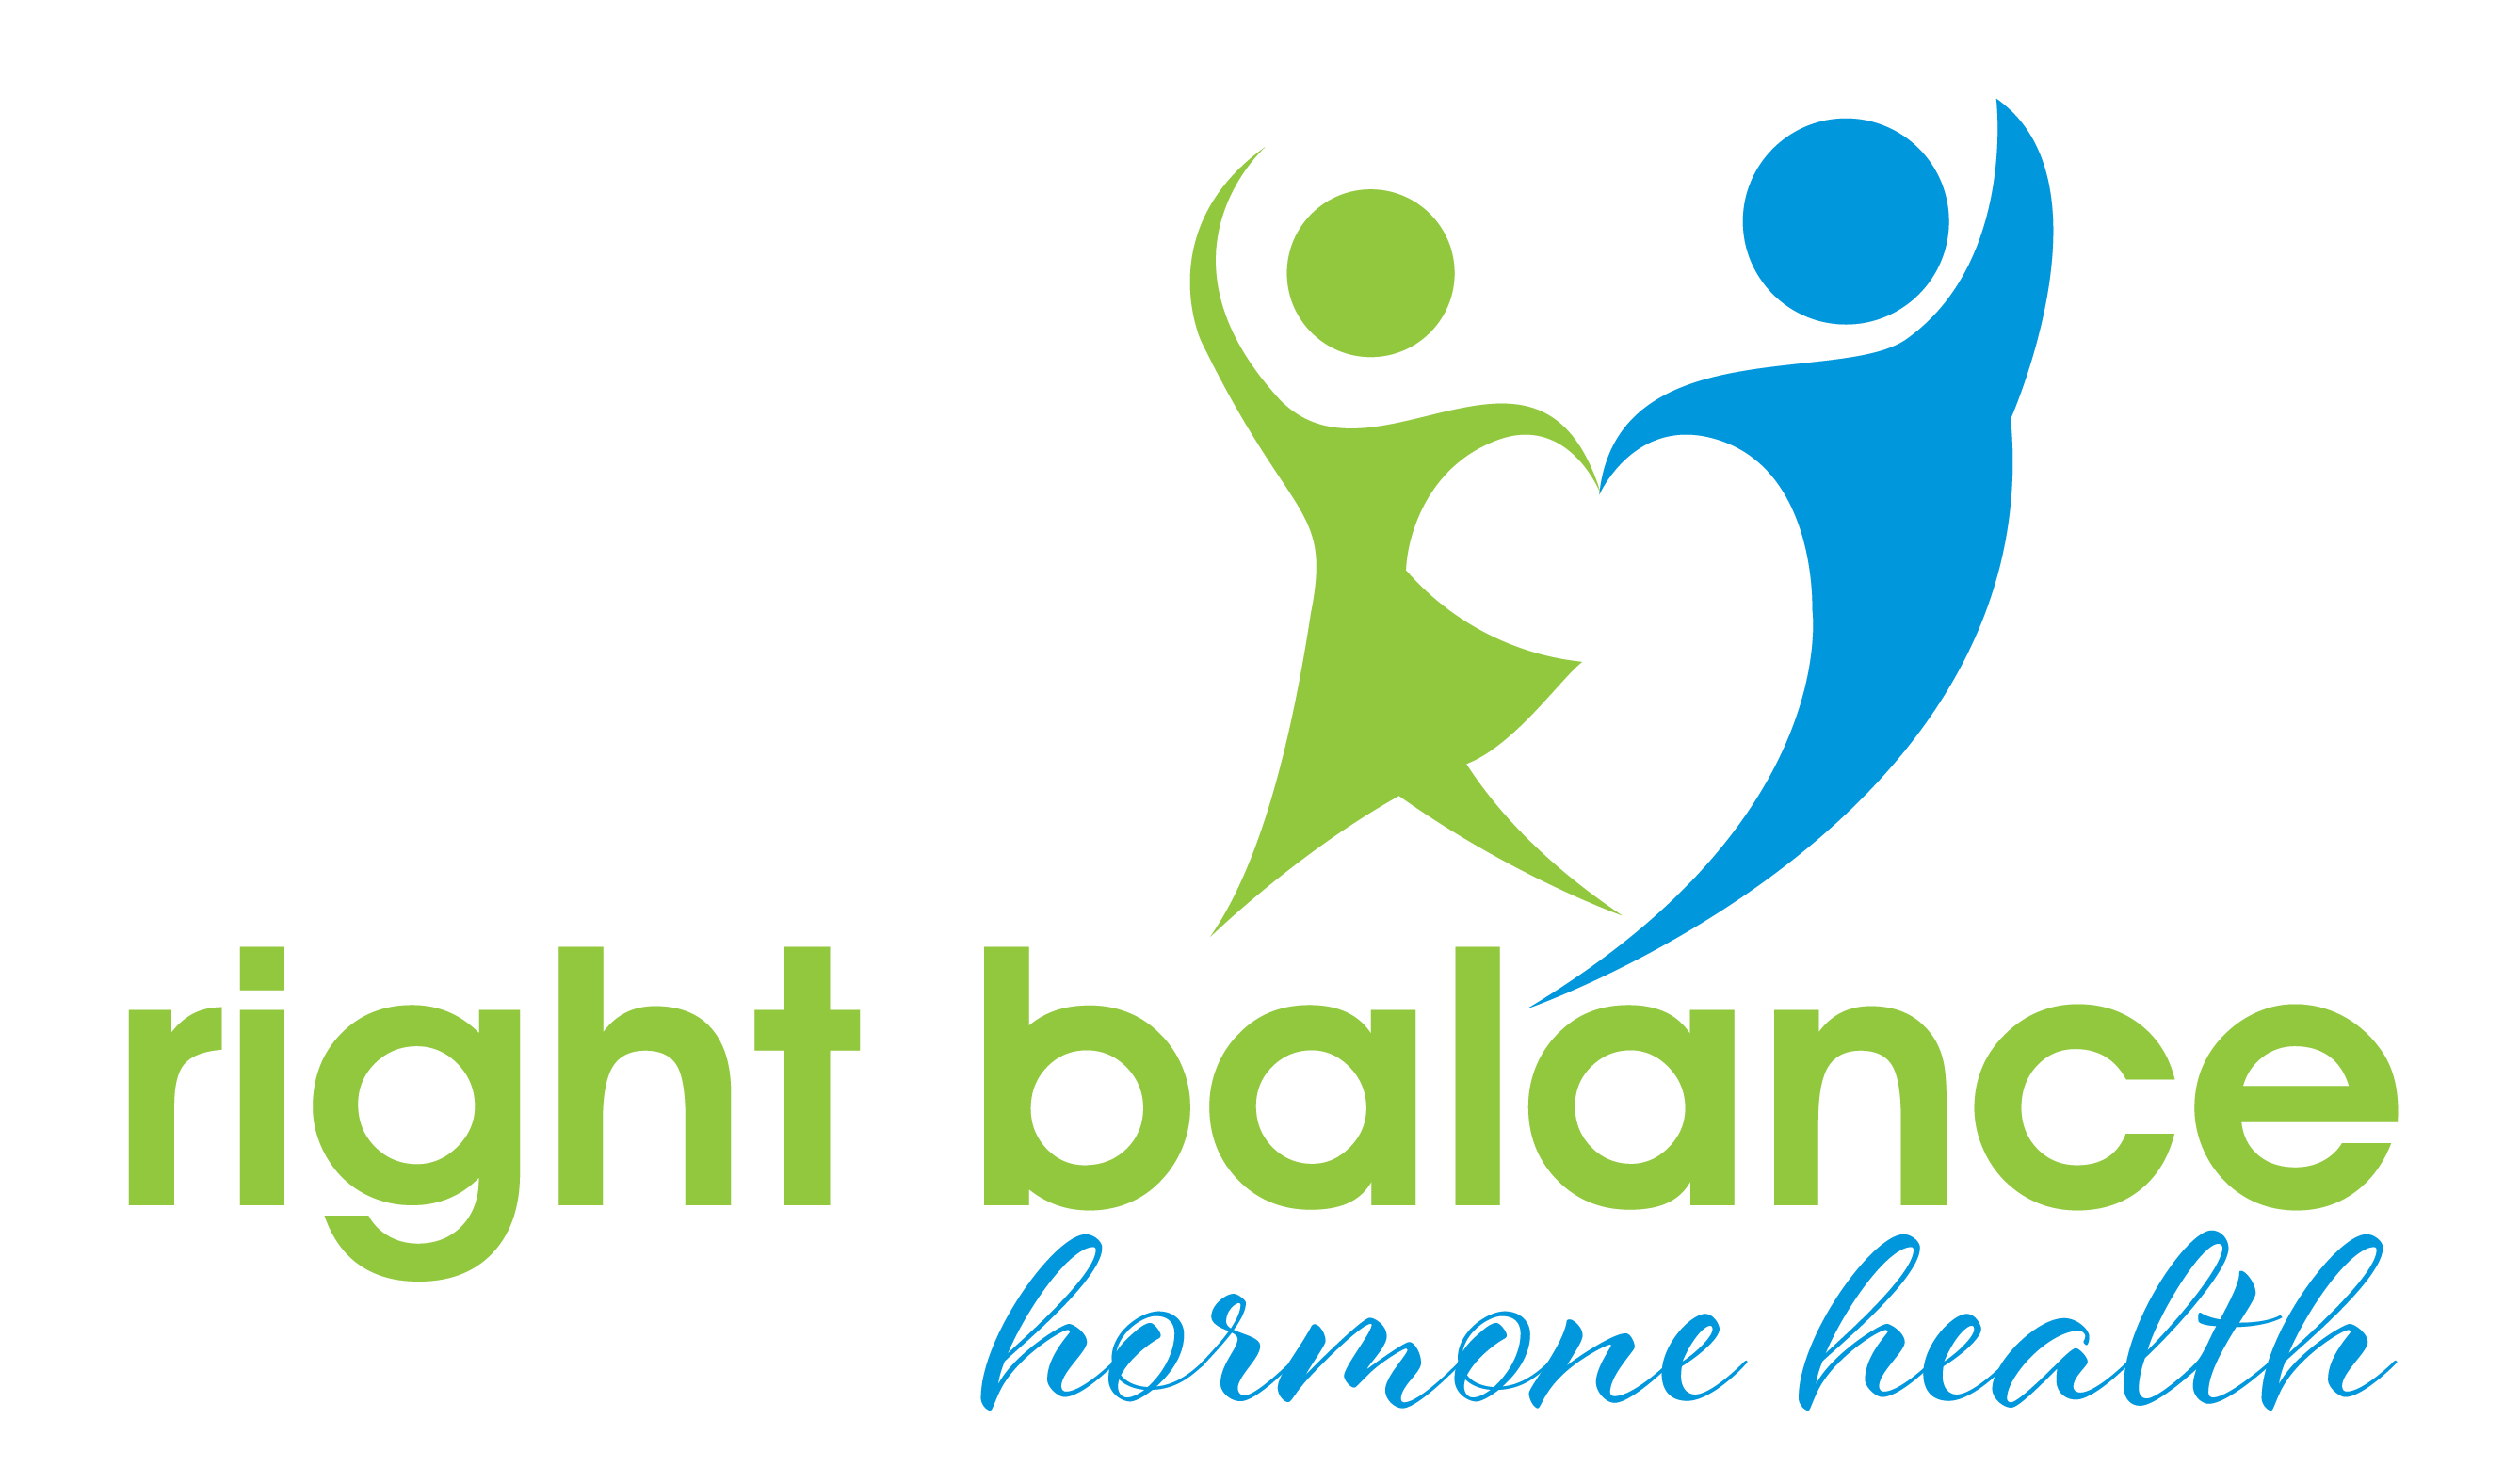 Right Balance Hormone Health